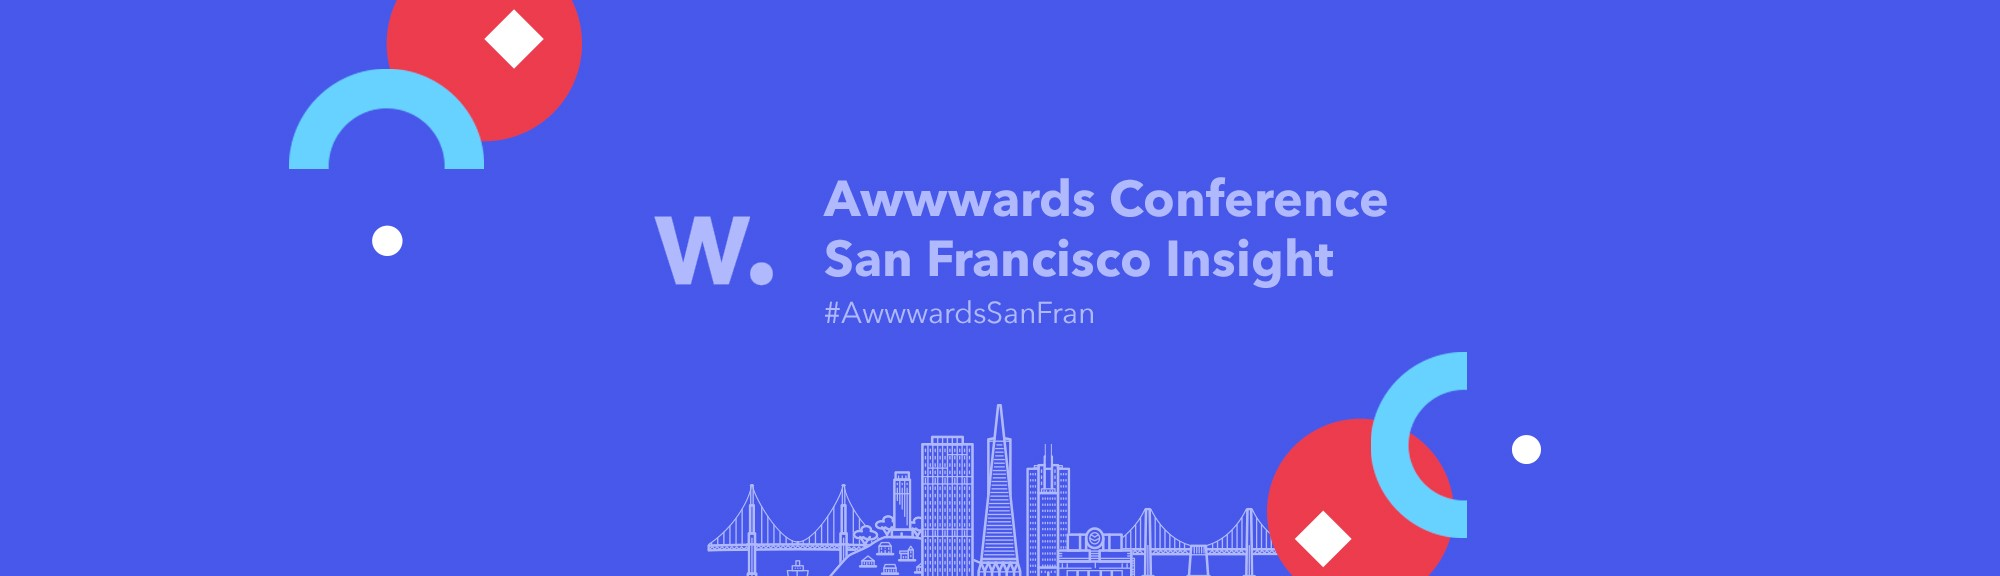 Insight into the Awwwards Conference in San Francisco